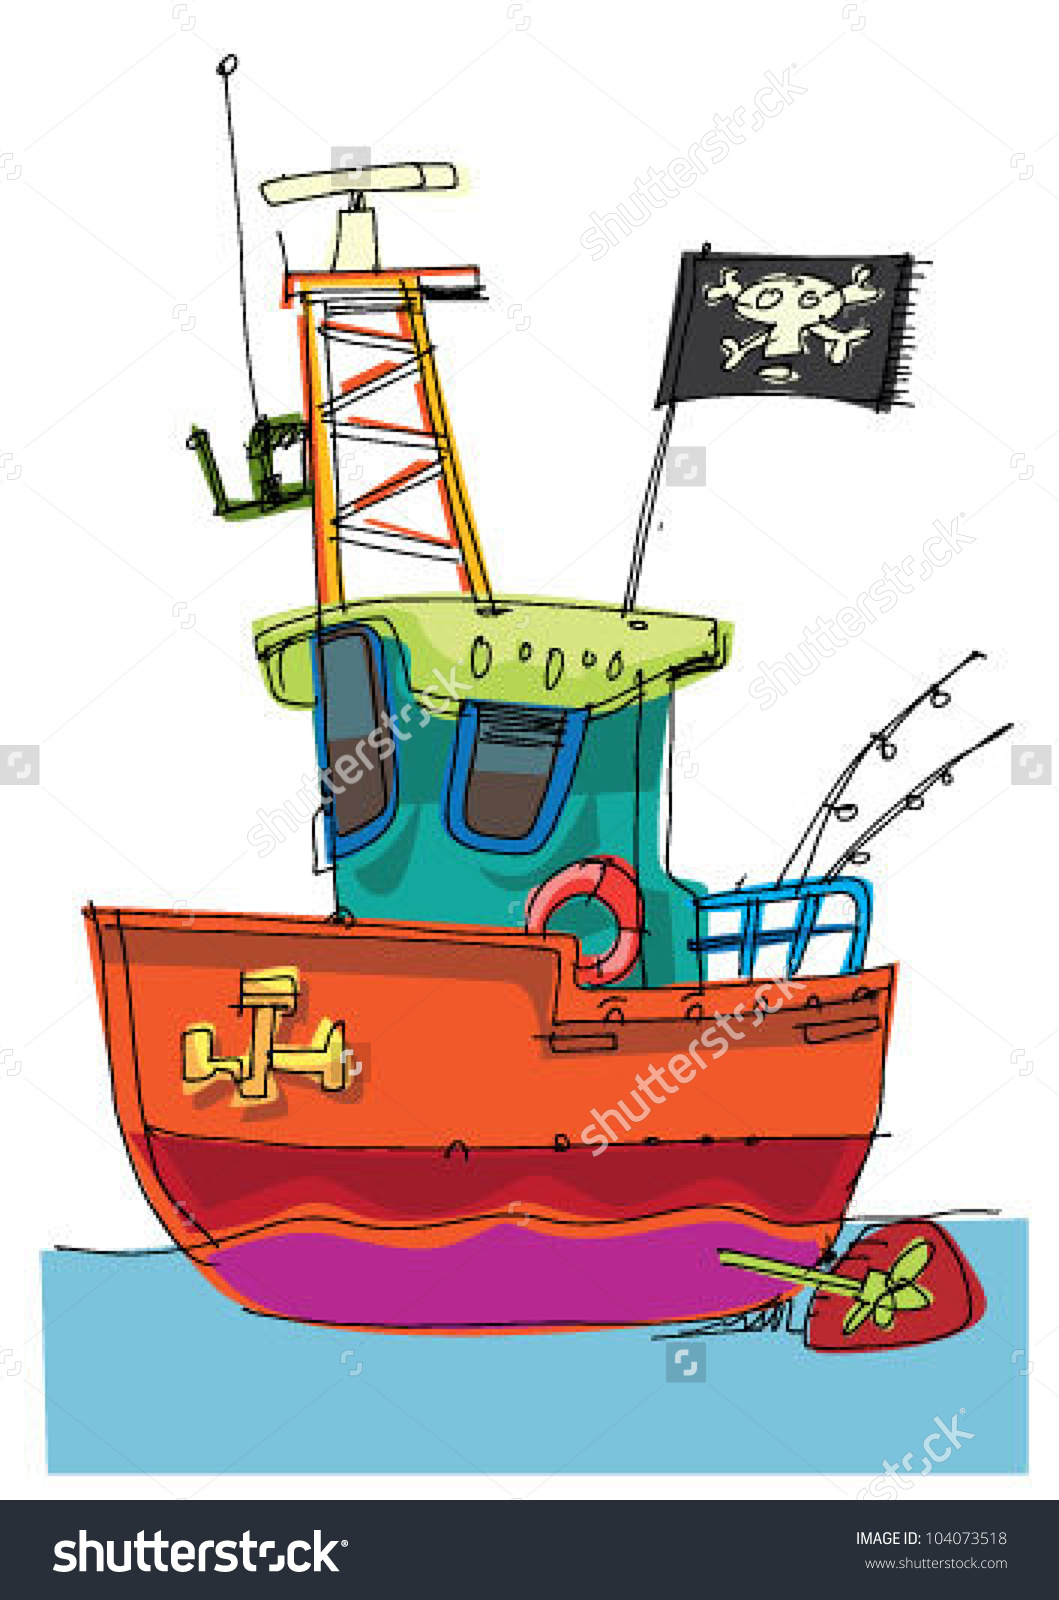 Fishboat Cartoon Caricature Stock Vector 104073518.